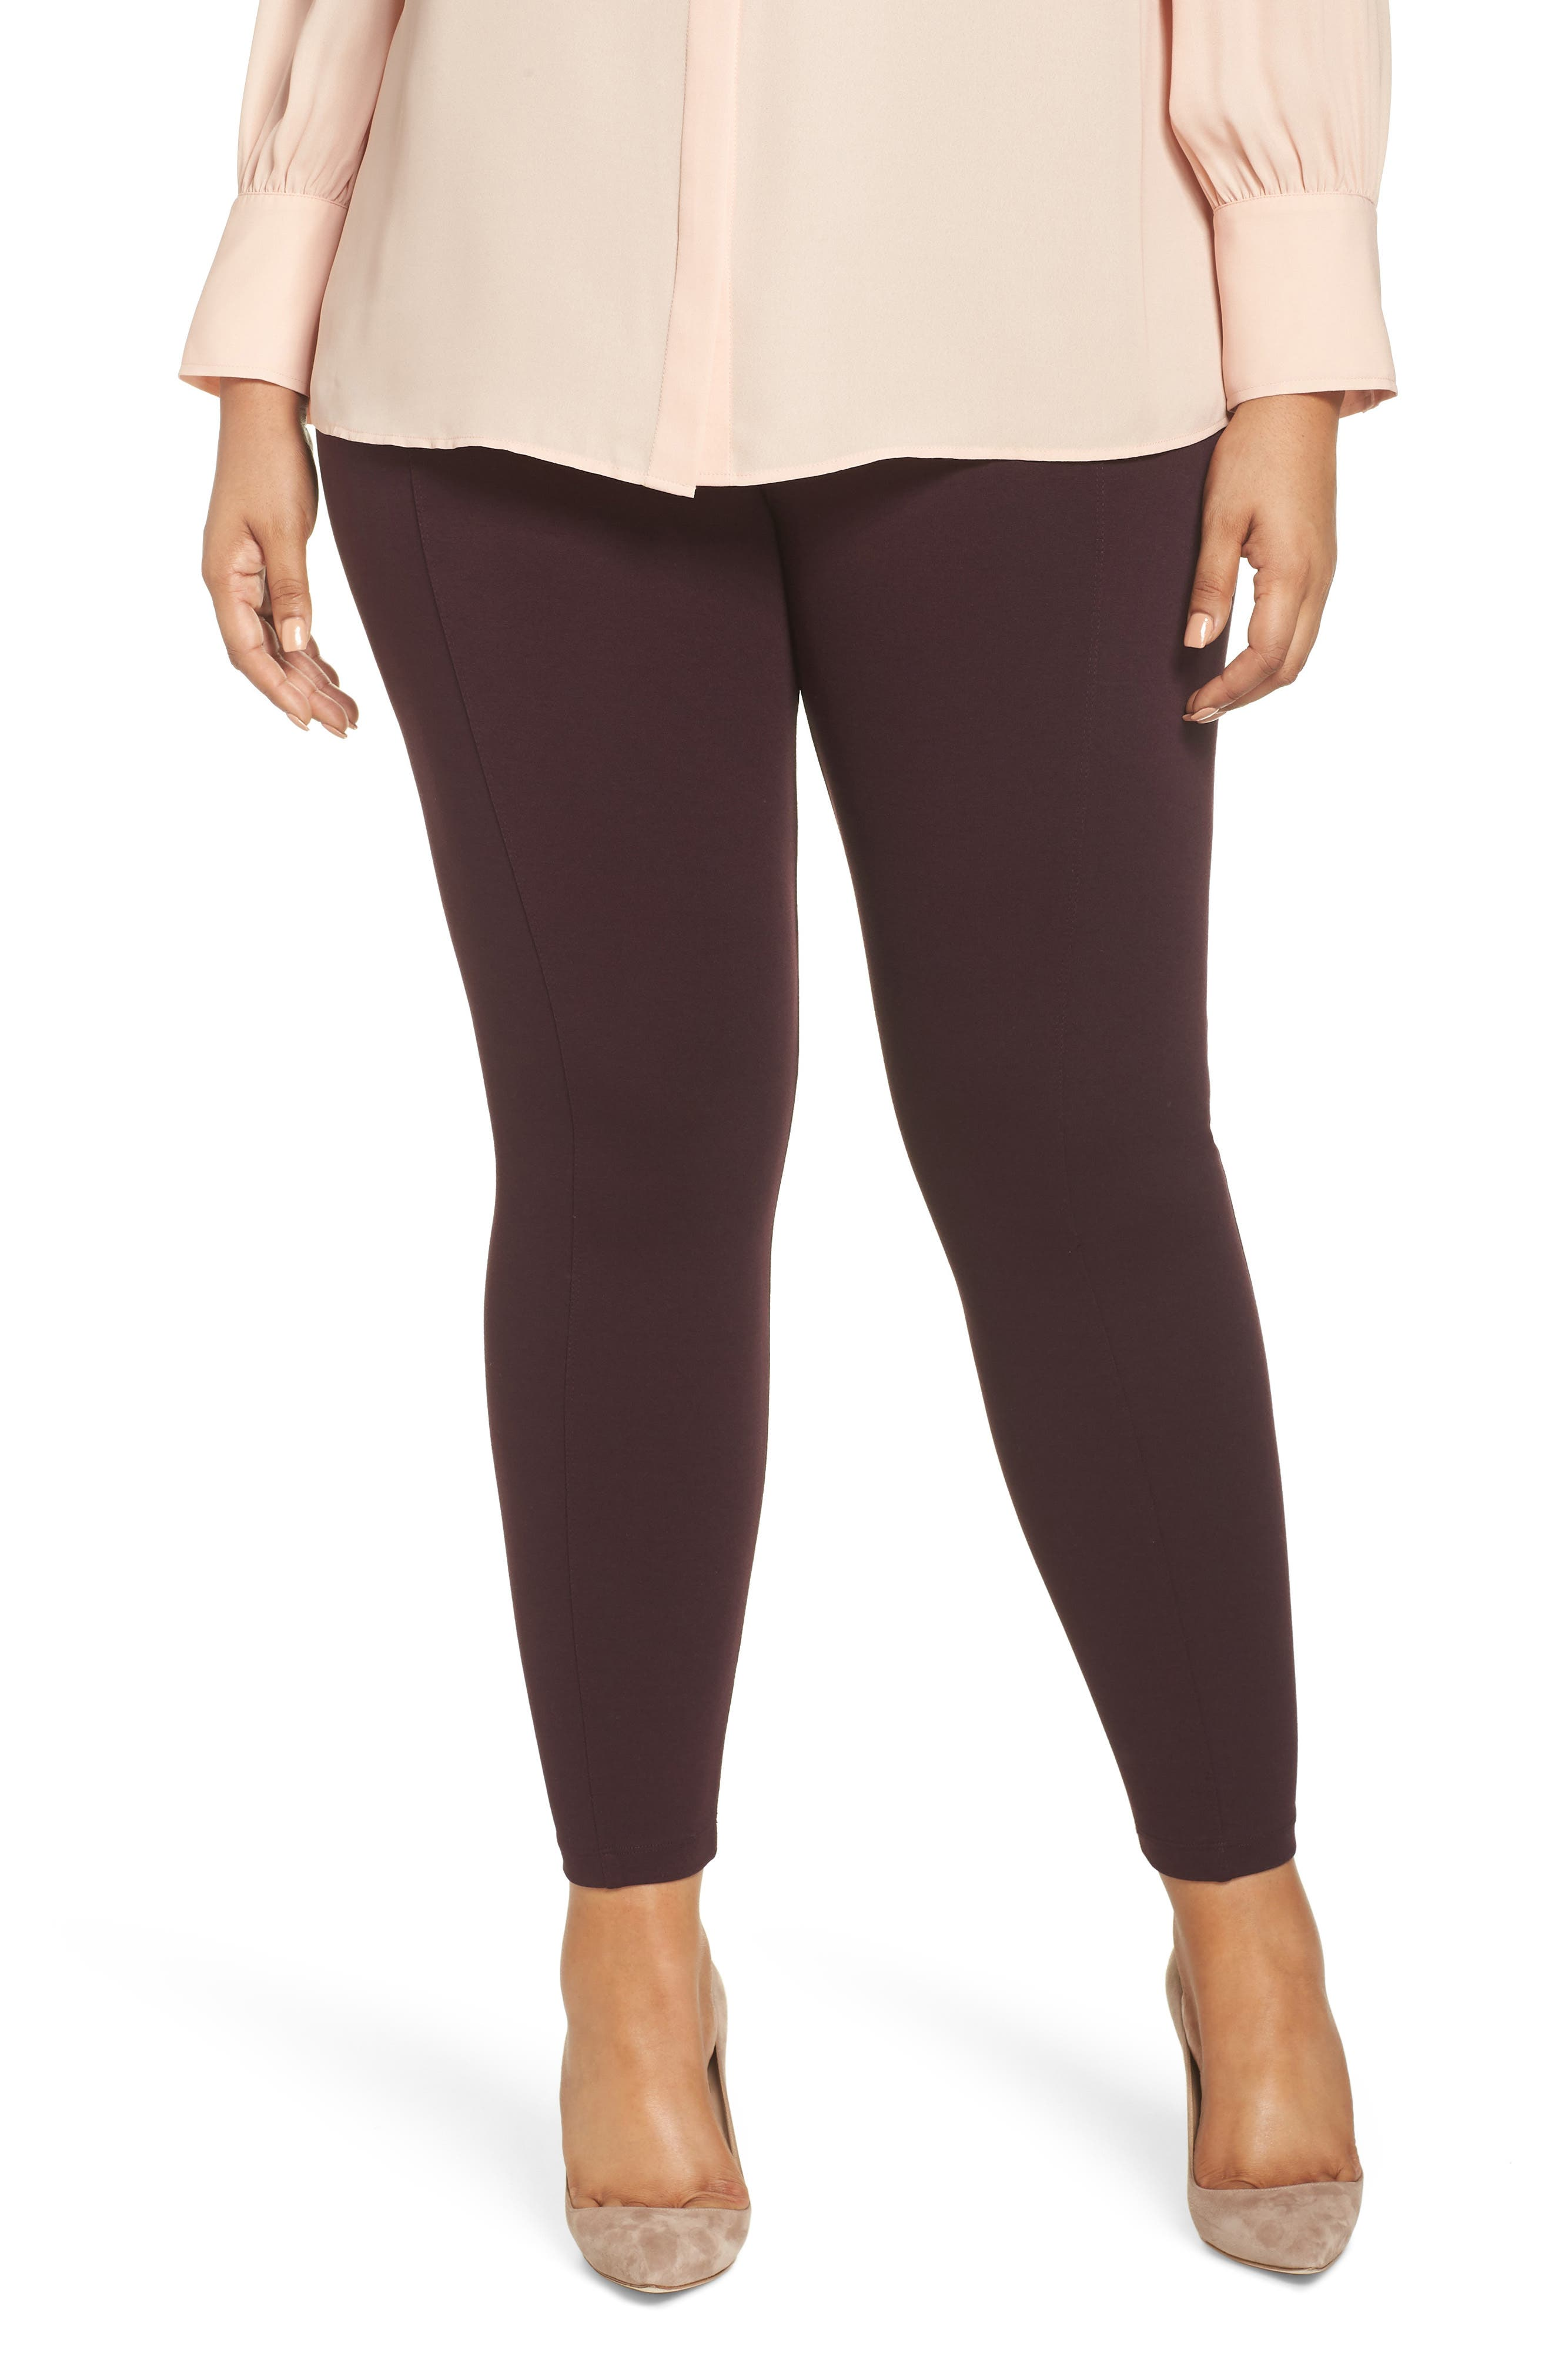 Pintucked seams elevate the sleek look of super-stretchy ponte leggings great for building casual or work ensembles. Style Name: Liverpool Reese Pintuck Ponte Leggings (Plus Size). Style Number: 5590391. Available in stores.